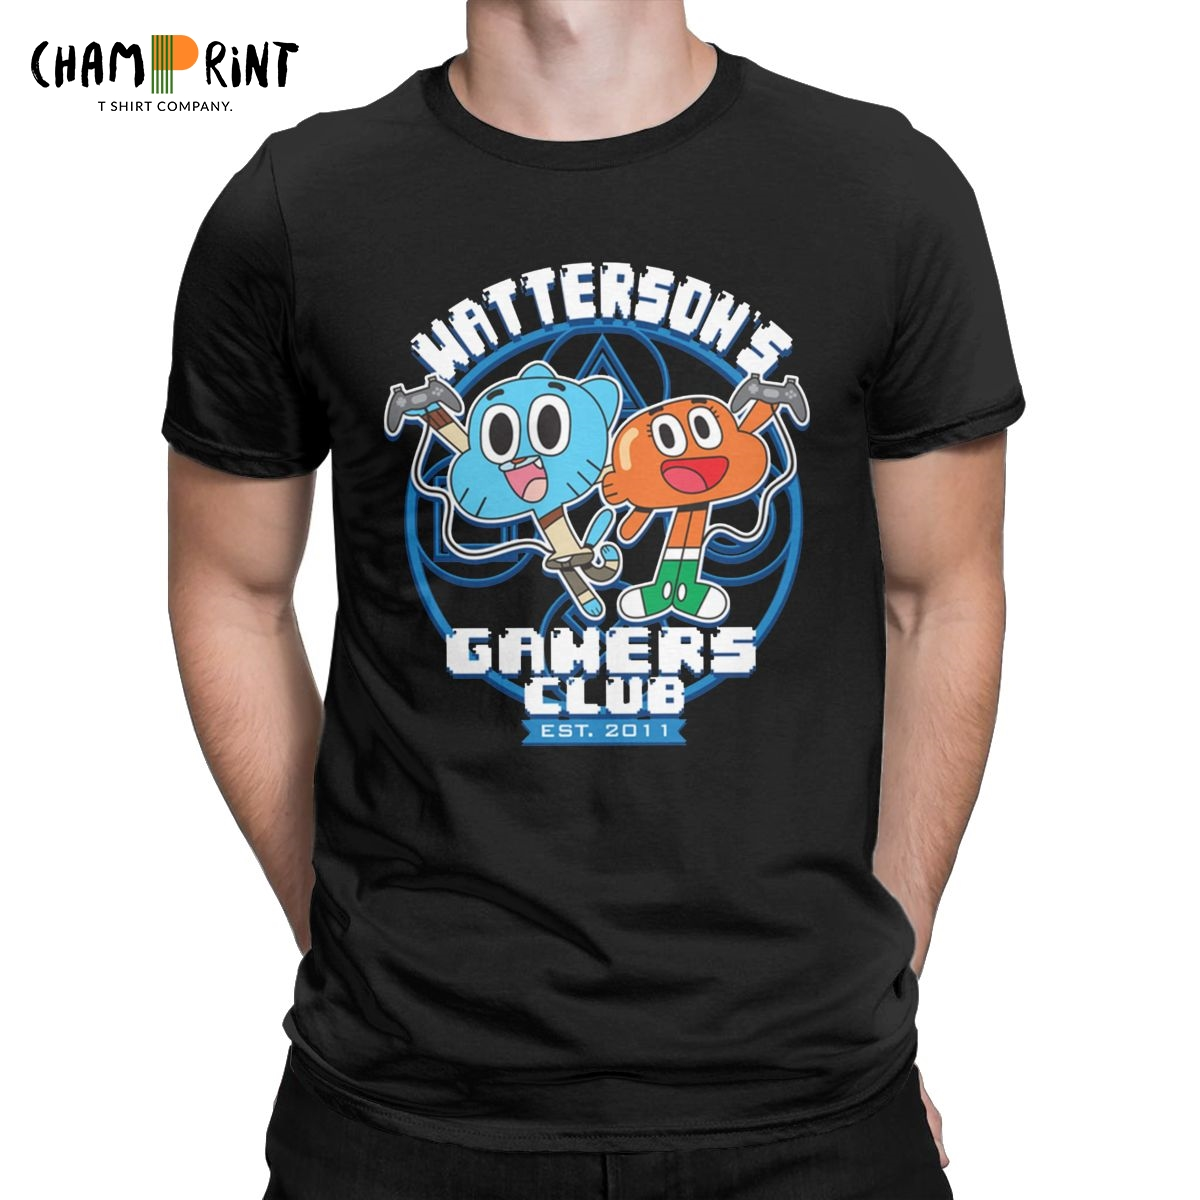 Watterson's Gamers Club Men T Shirt The Amazing World of Gumball Novelty Tees Short Sleeve Crewneck T-Shirt Cotton 5XL 6XL Tops image